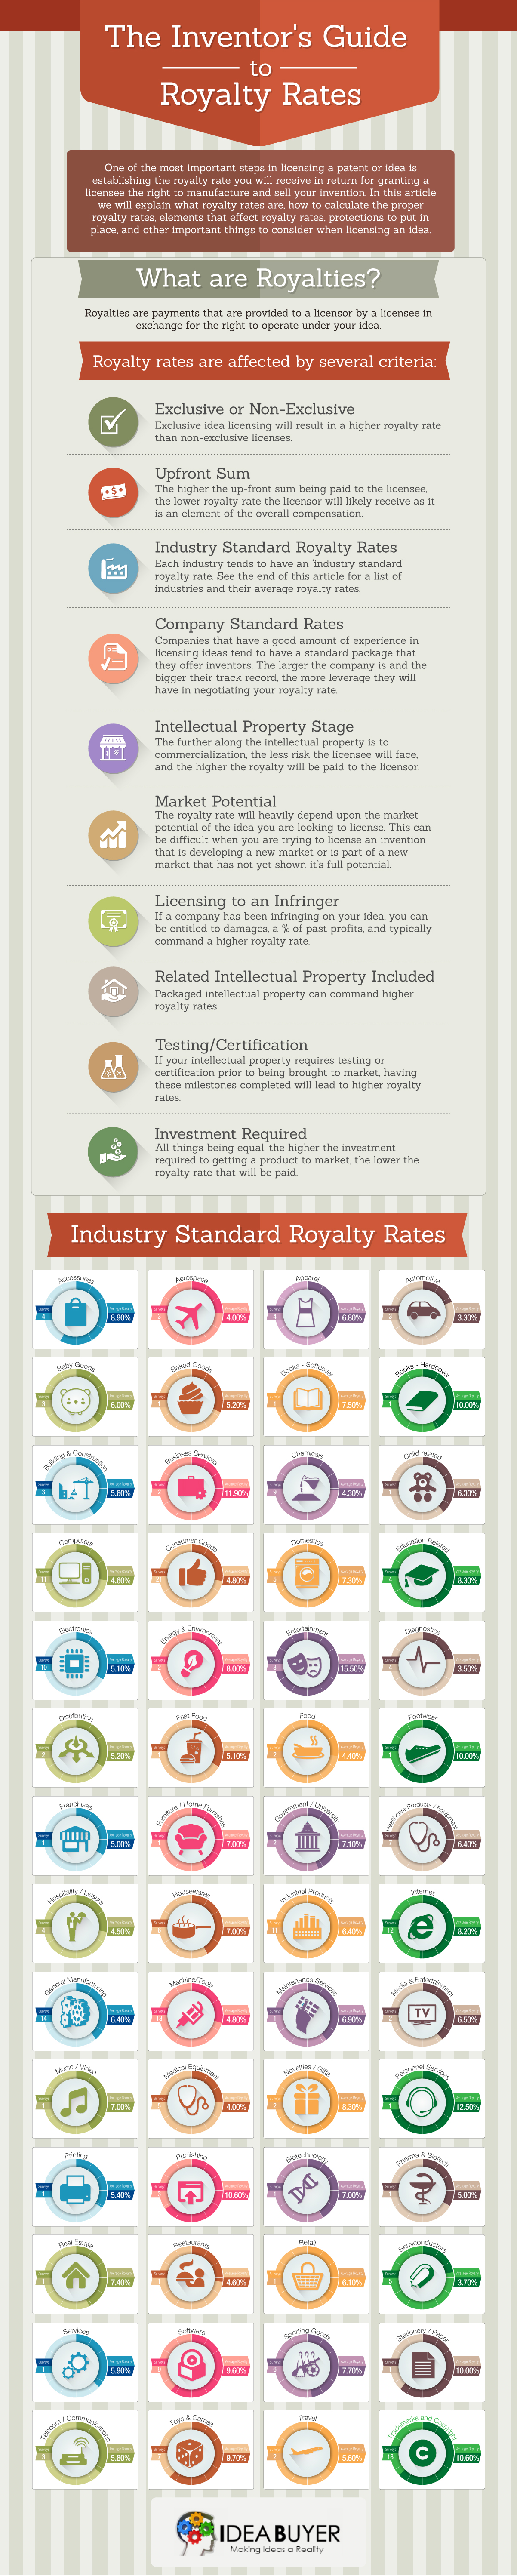 Patent Royalty Rates